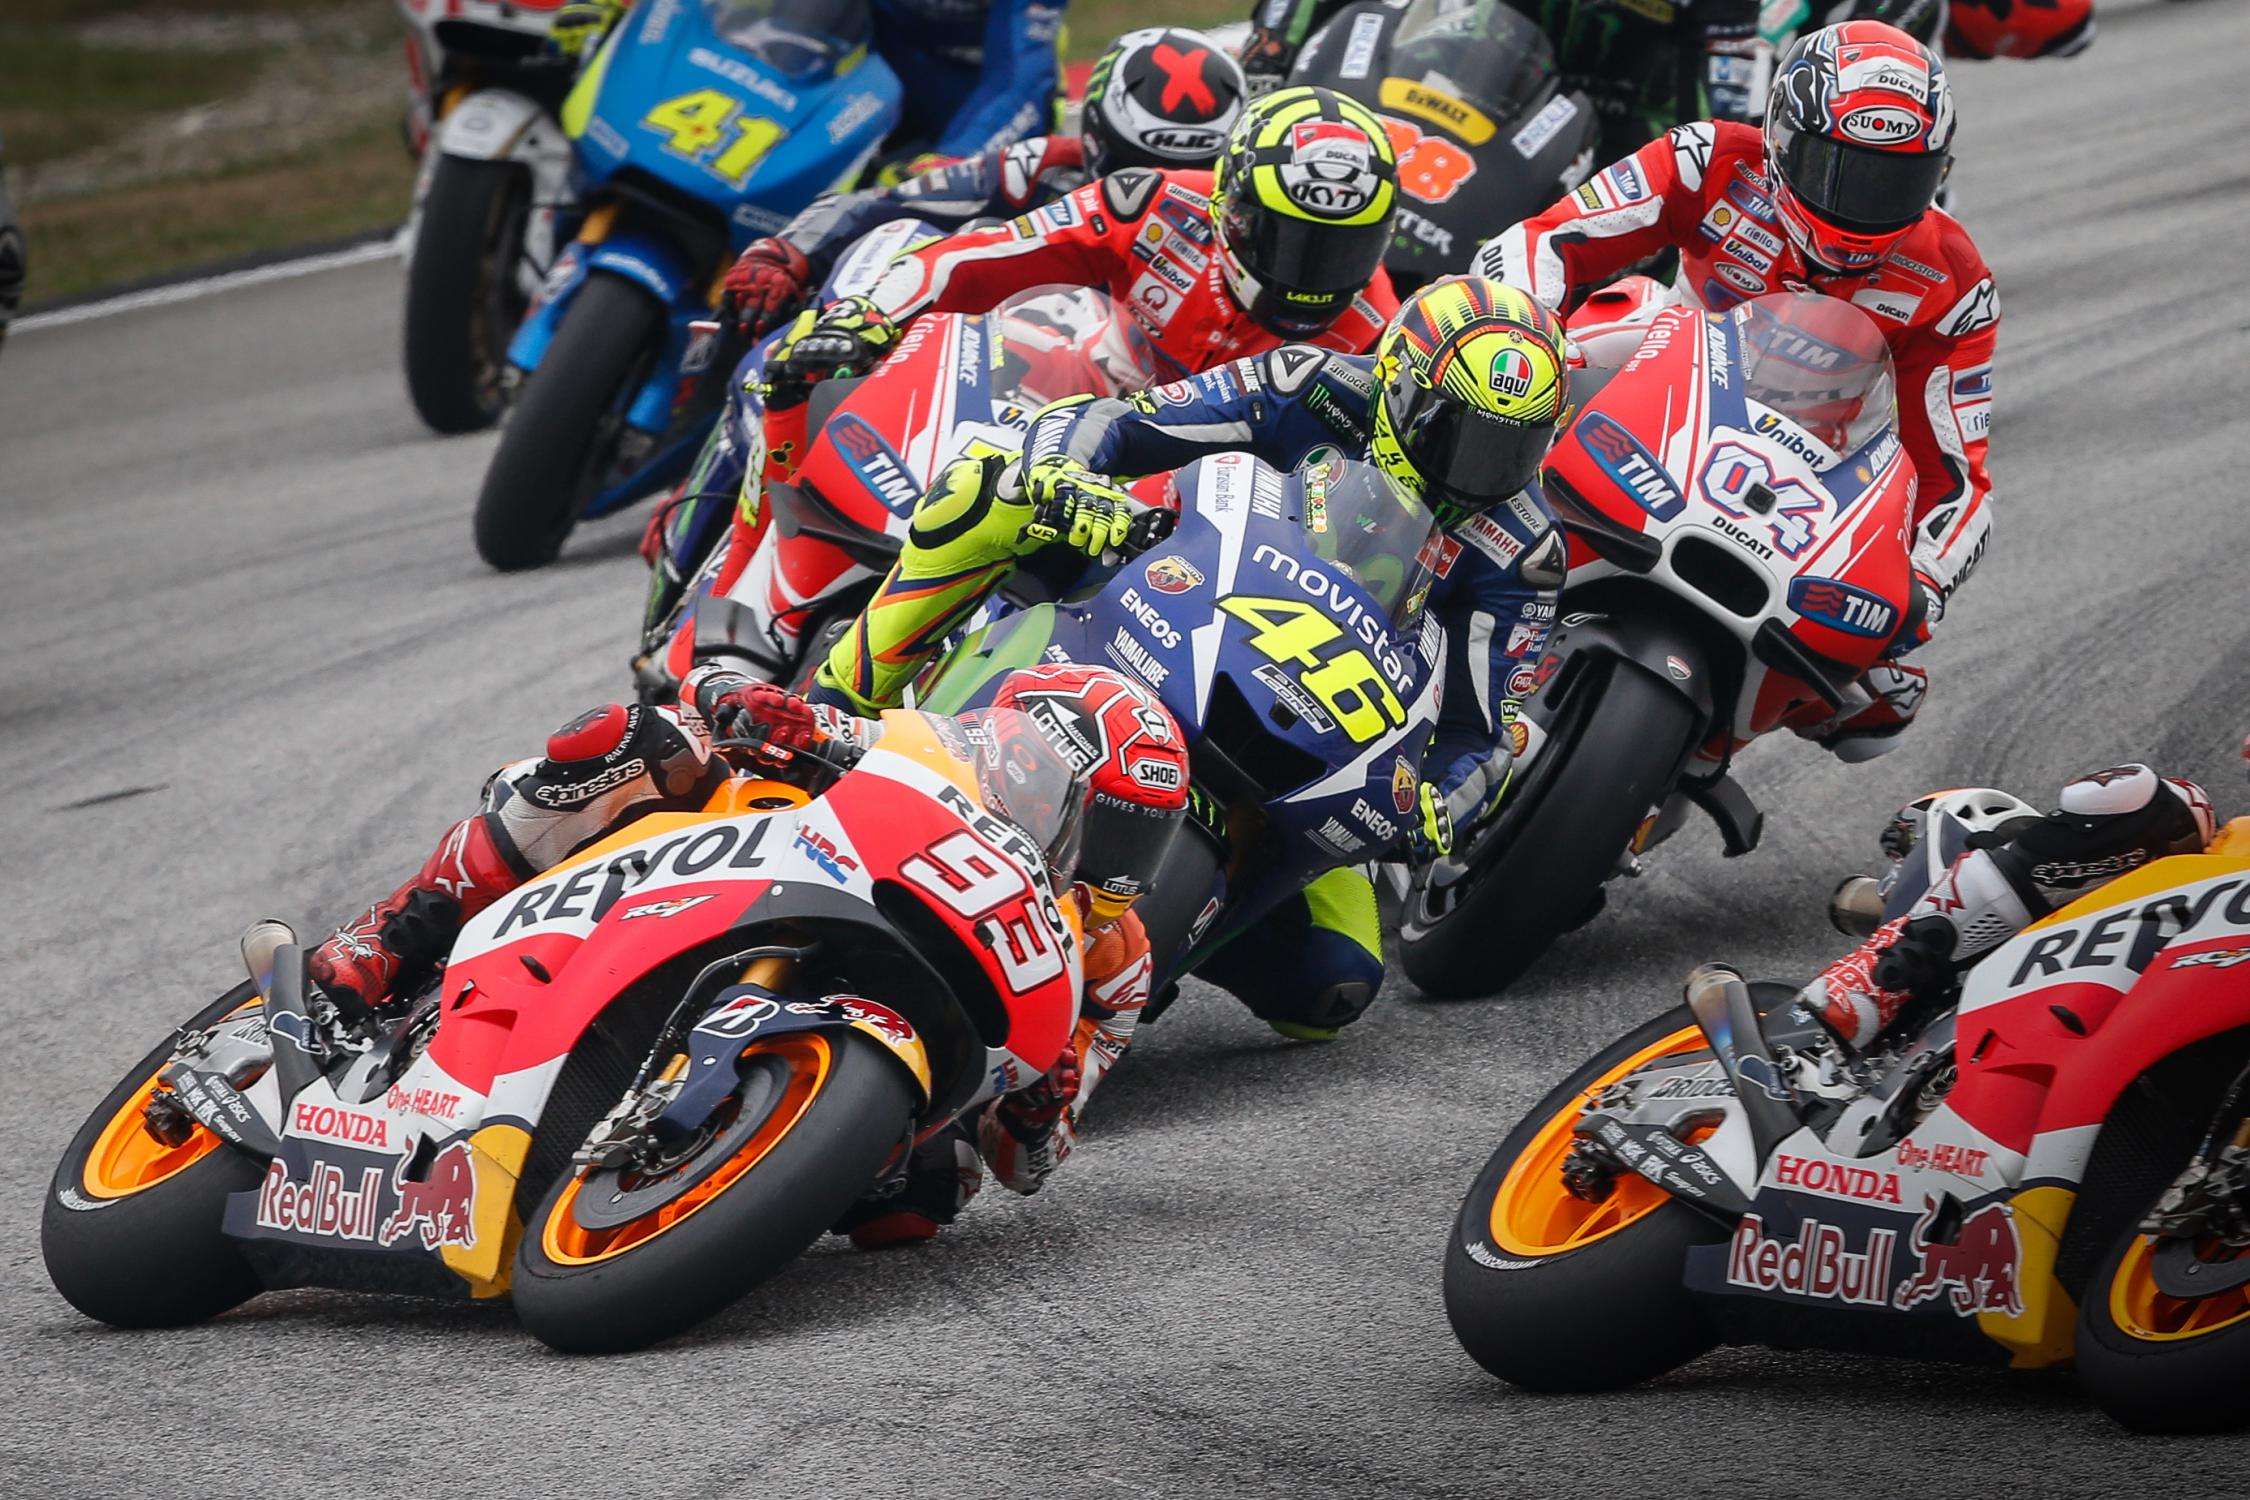 2016 MotoGP Provisional Calendar Includes Austrias Red Bull Ring